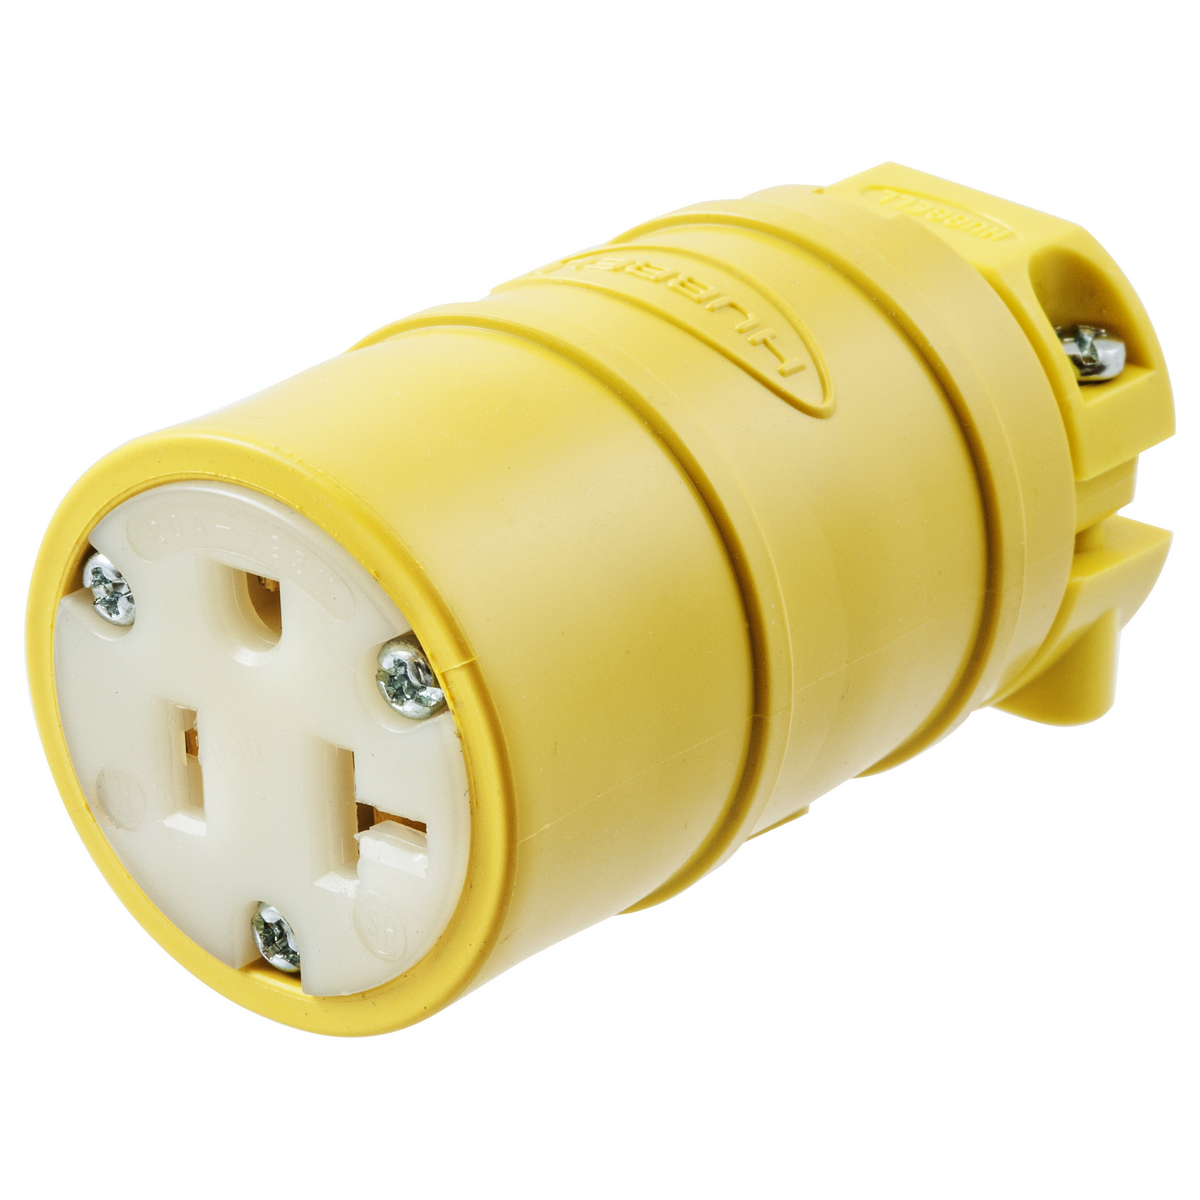 Hubbell HBL1533 20 Amp 125 Volt 2-Pole 3-Wire NEMA 5-20R Yellow Straight Blade Connector